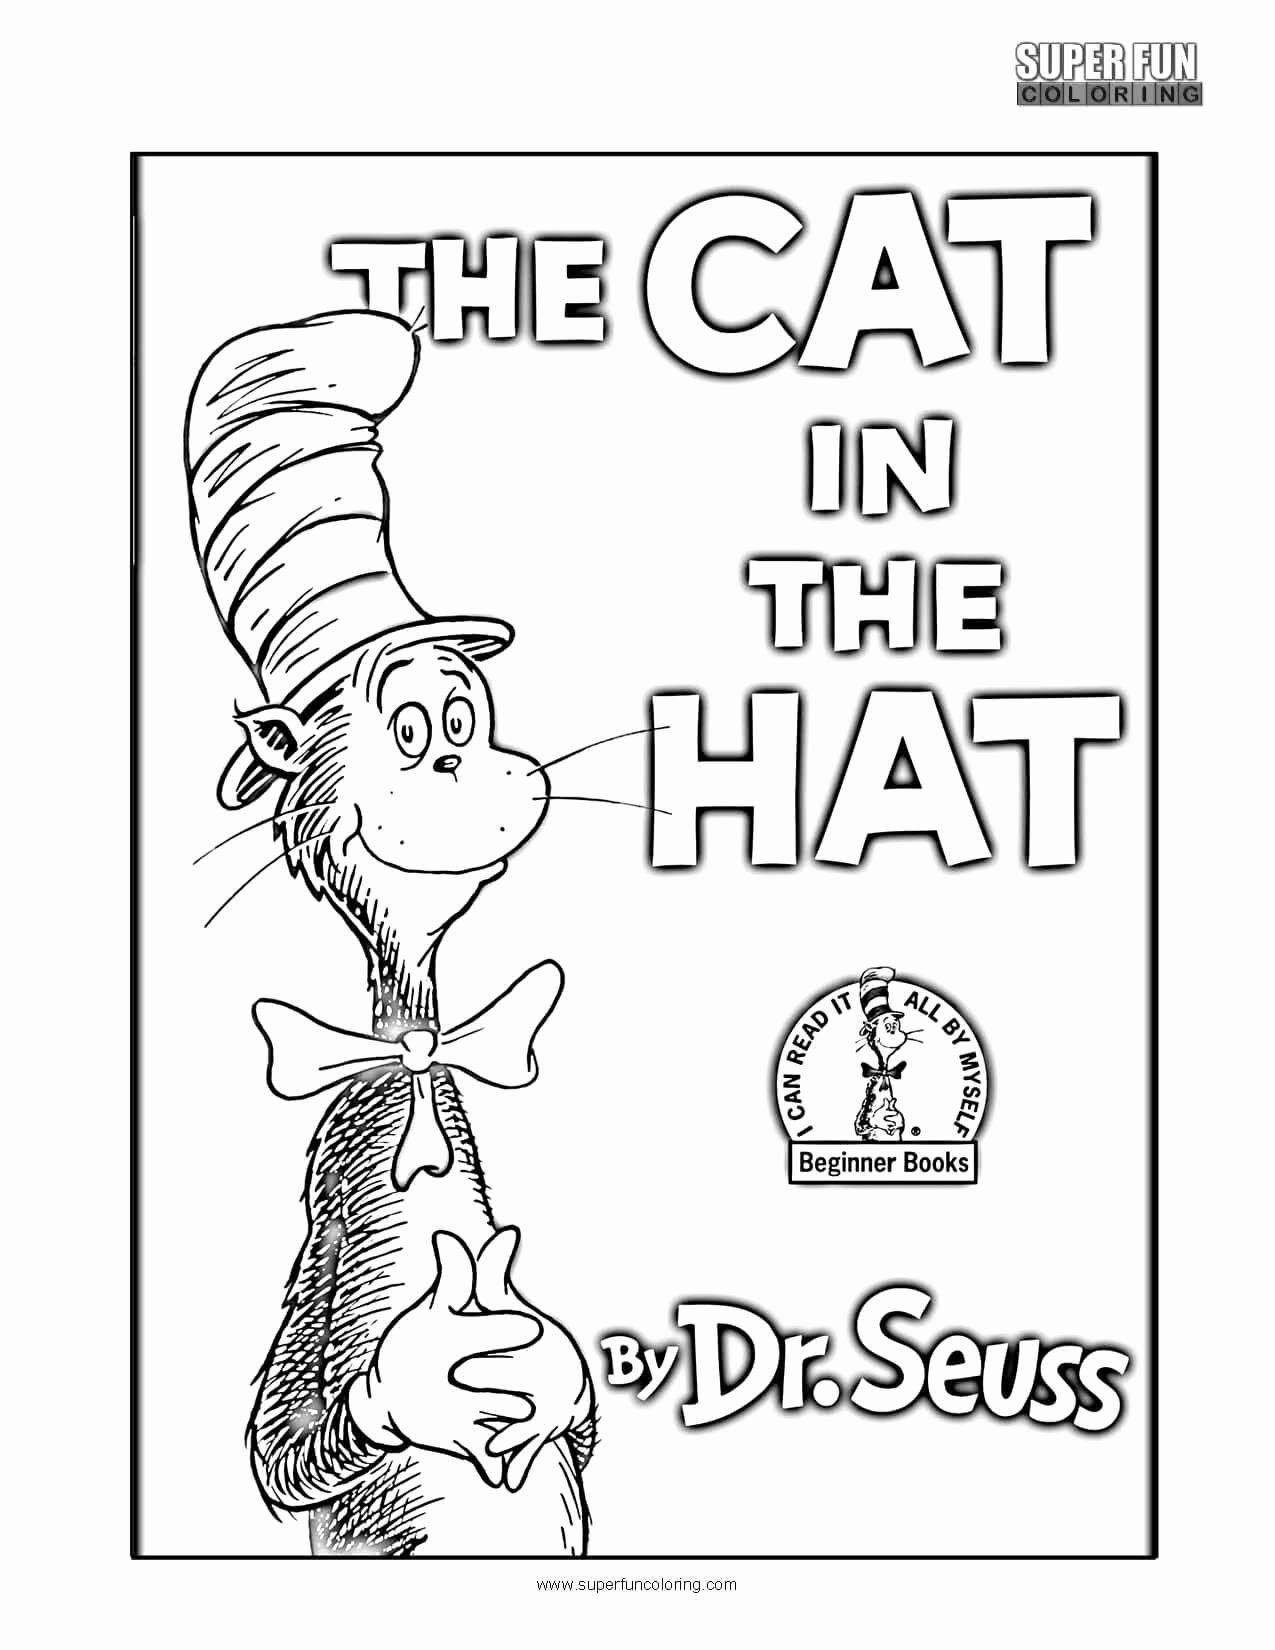 Cat In The Hat Coloring Page Elegant Coloring Pages Book Cover Coloring The Cat In Hat Dr Seuss Coloring Pages Fnaf Coloring Pages Coloring Pages